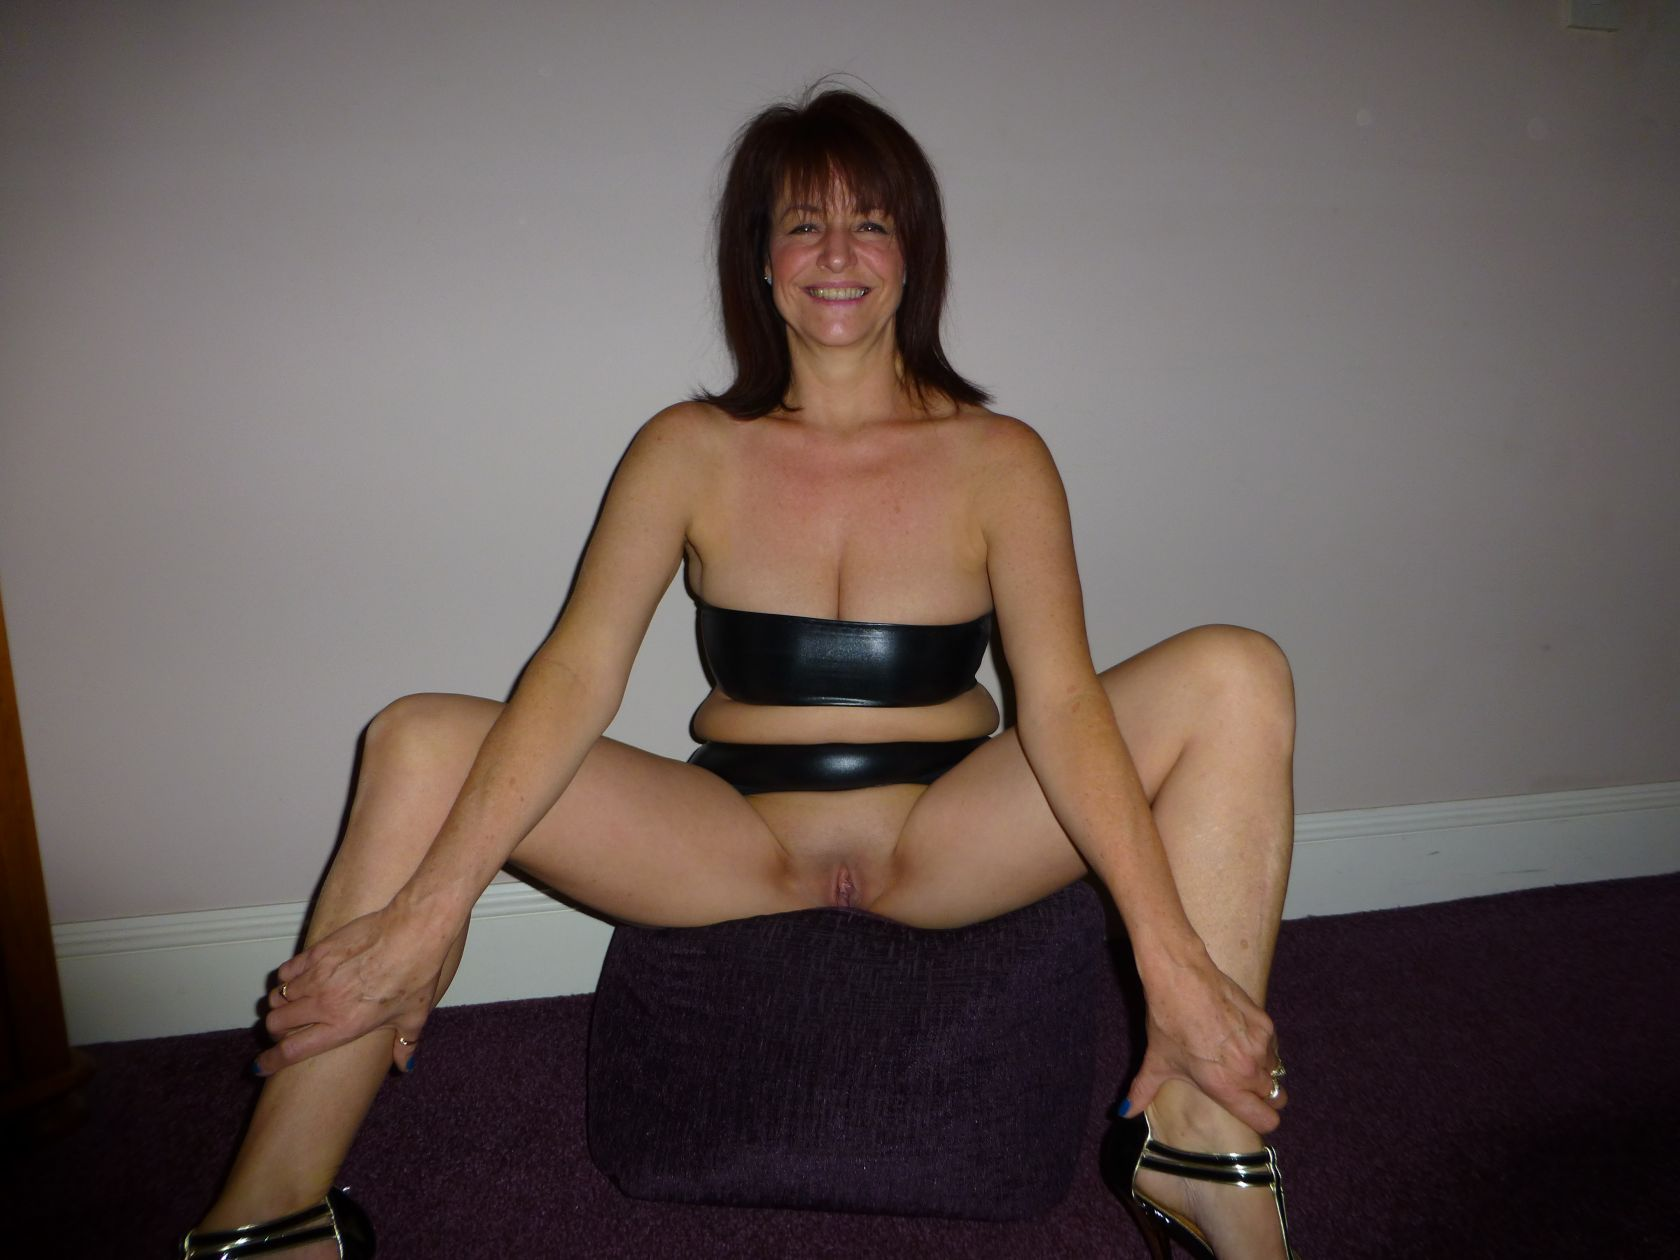 Cute smiling slutwife in latex real nudity pussy flash no panties milf pics mature howife